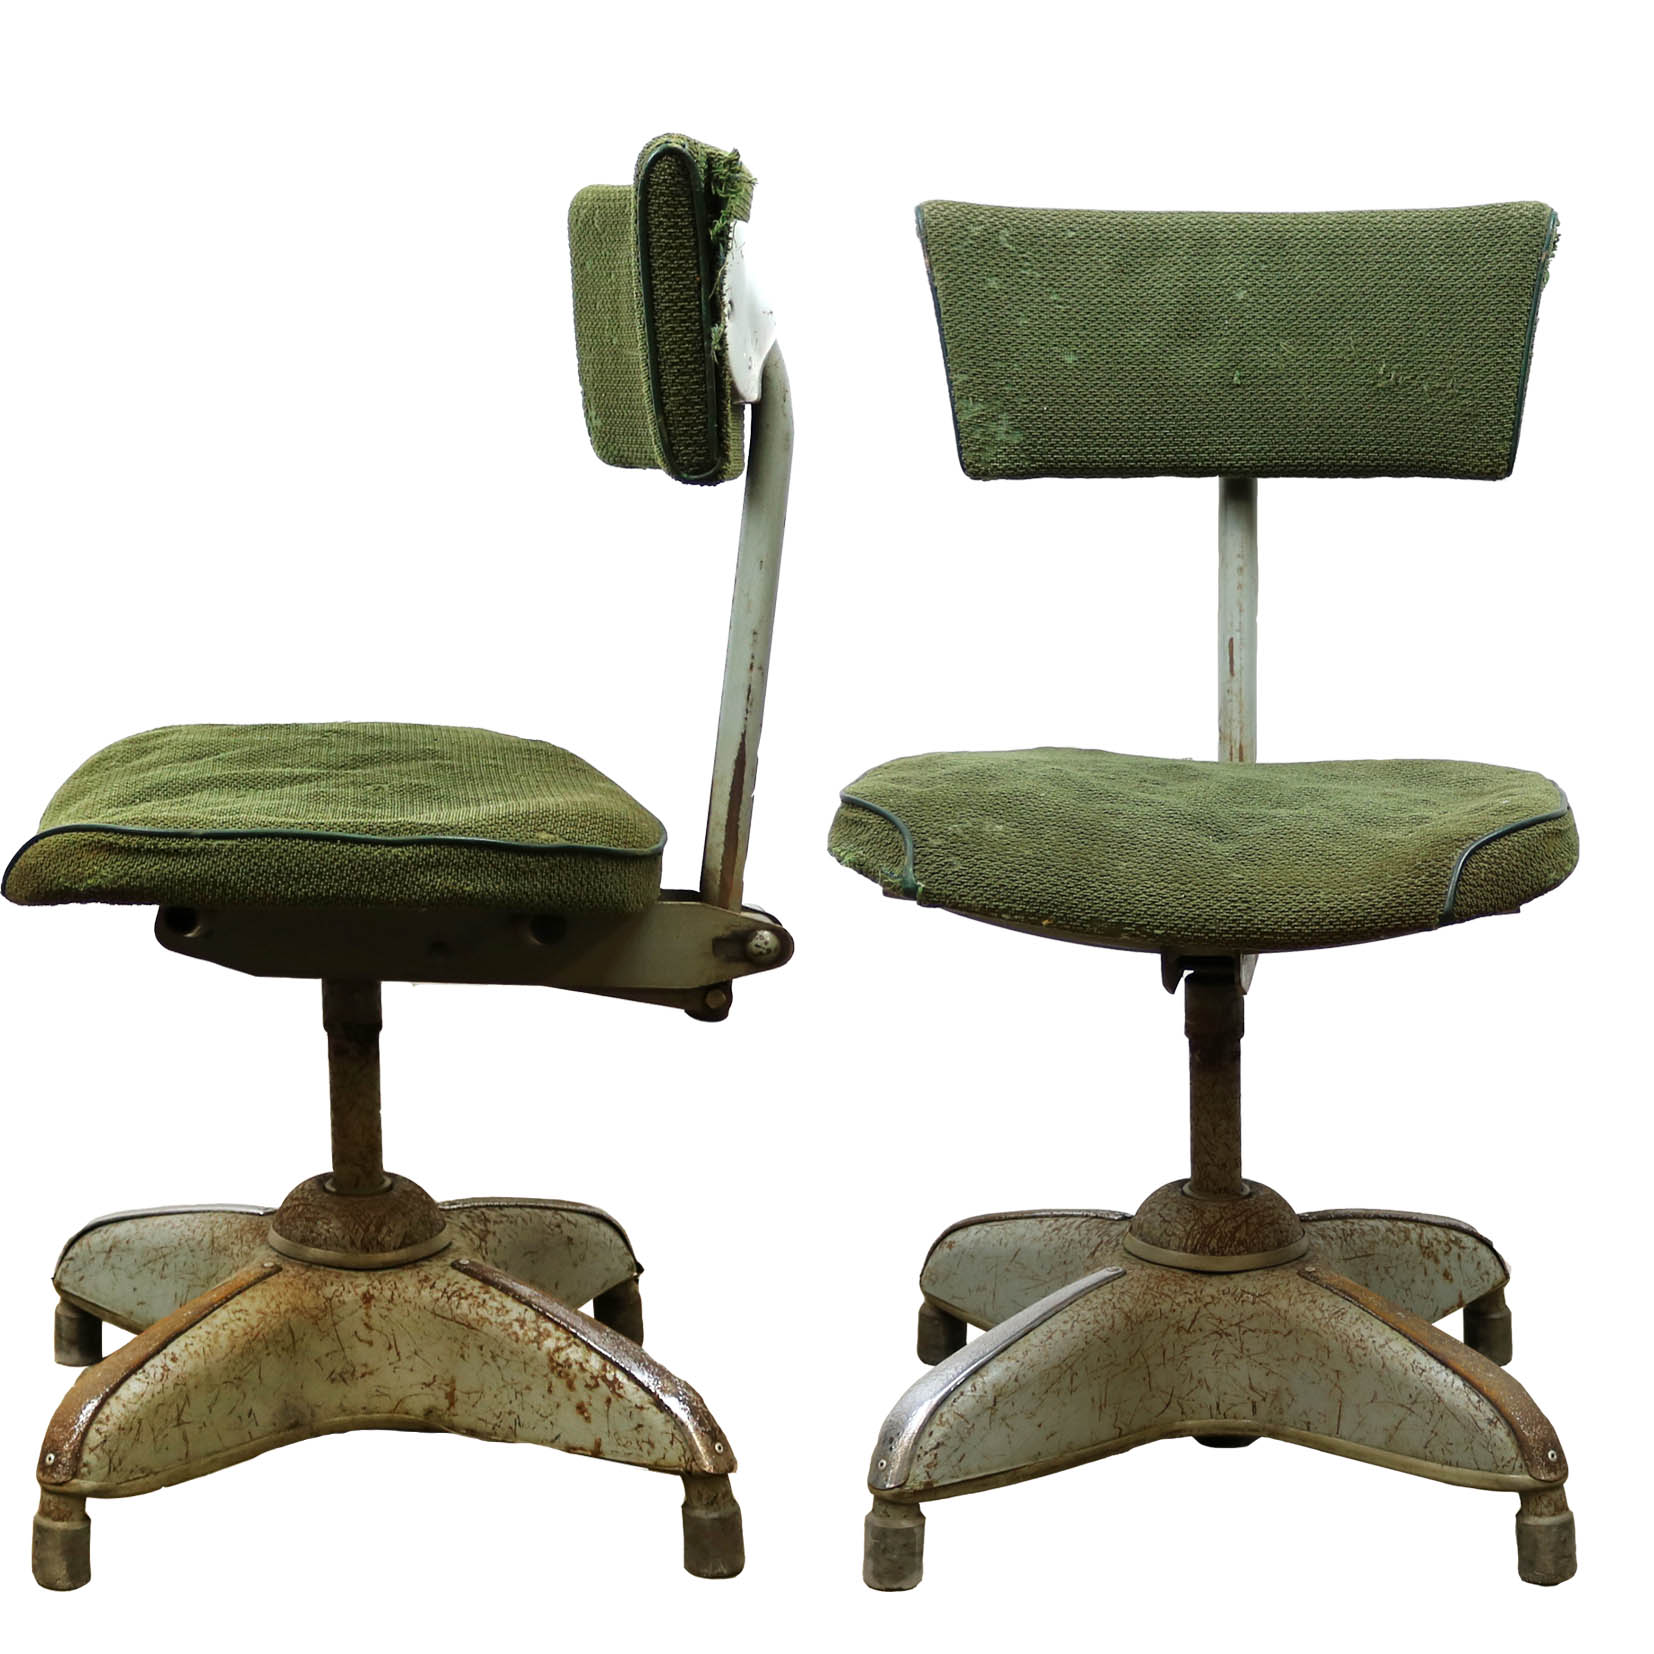 Vintage Green 1950's Industrial Swivel Office Chair